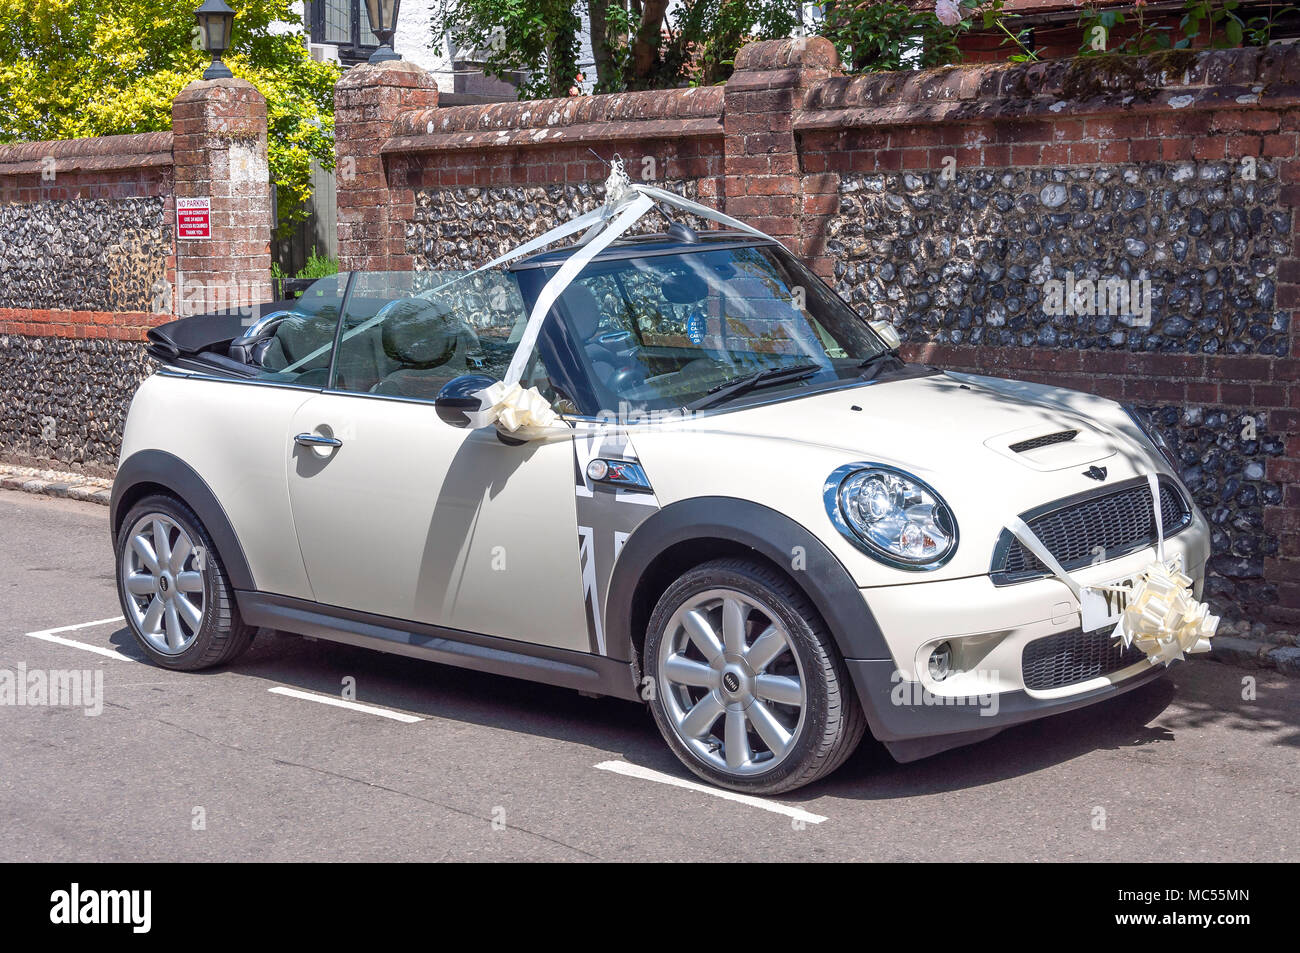 A Mini Cooper S Convertible decorated as a wedding car,  High Street, Hurley, Berkshire, England, United Kingdom - Stock Image